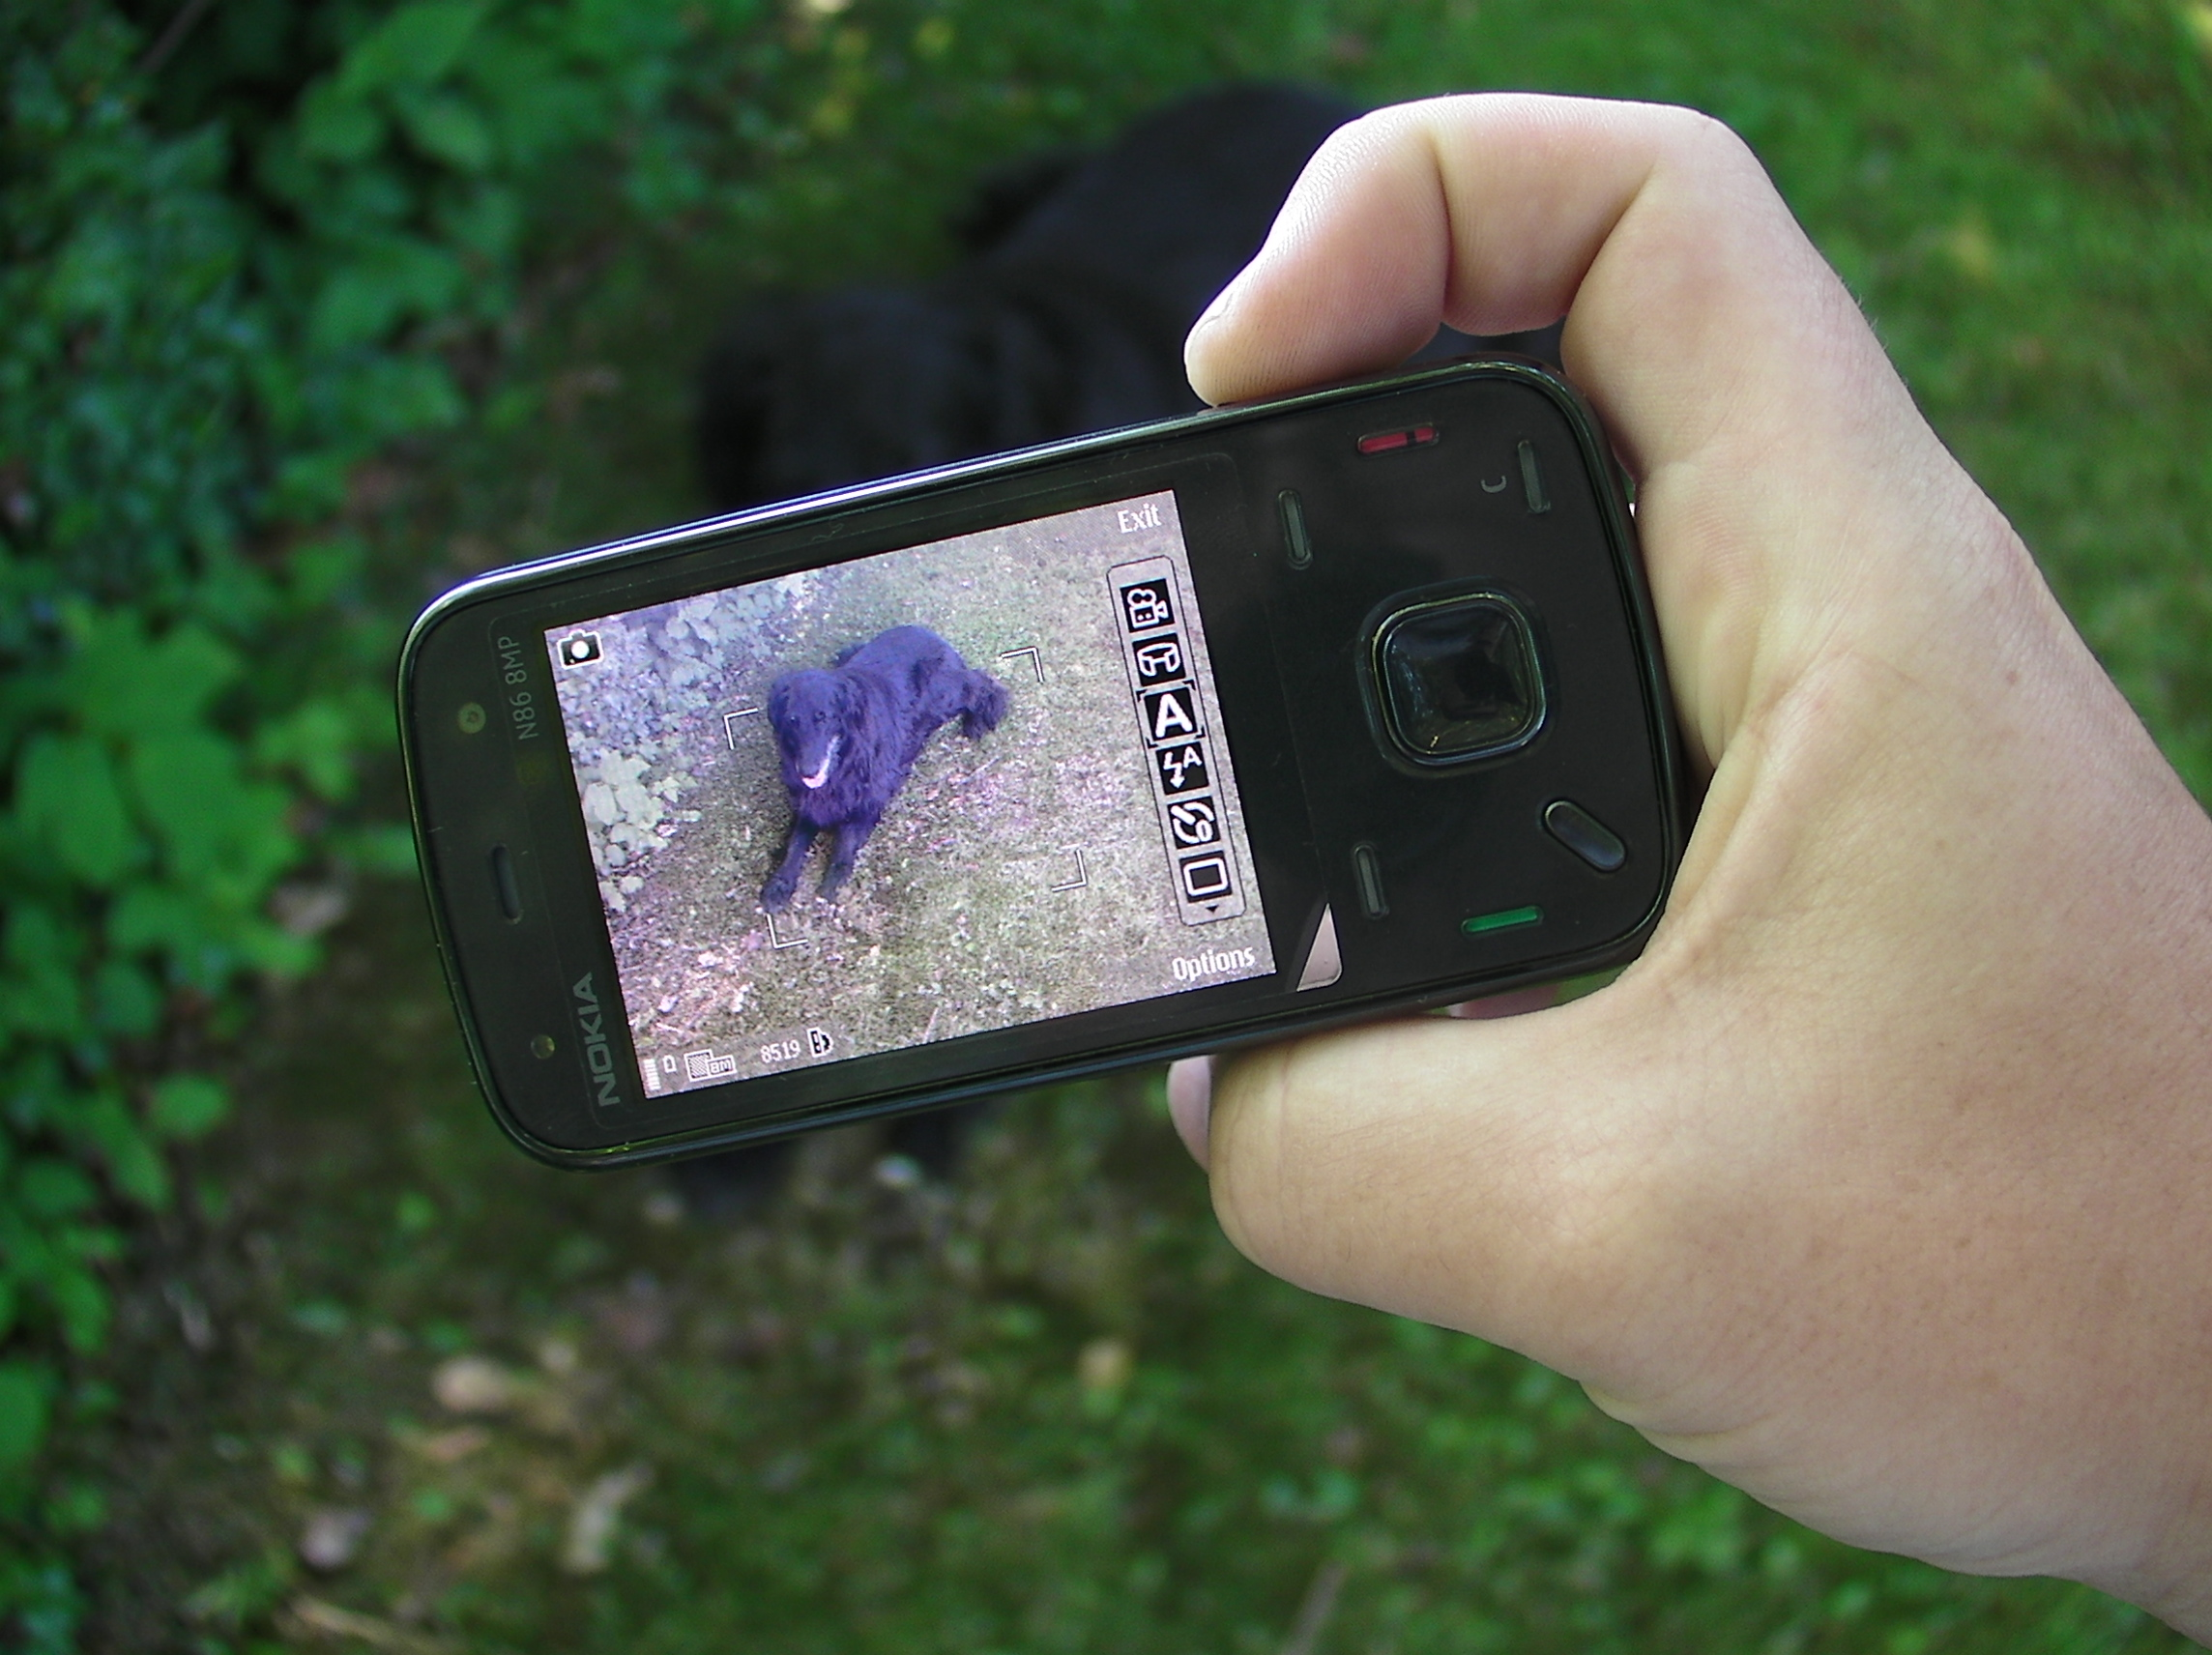 Nokia n86 camera nokia n86 8mp review part 1 overview review all